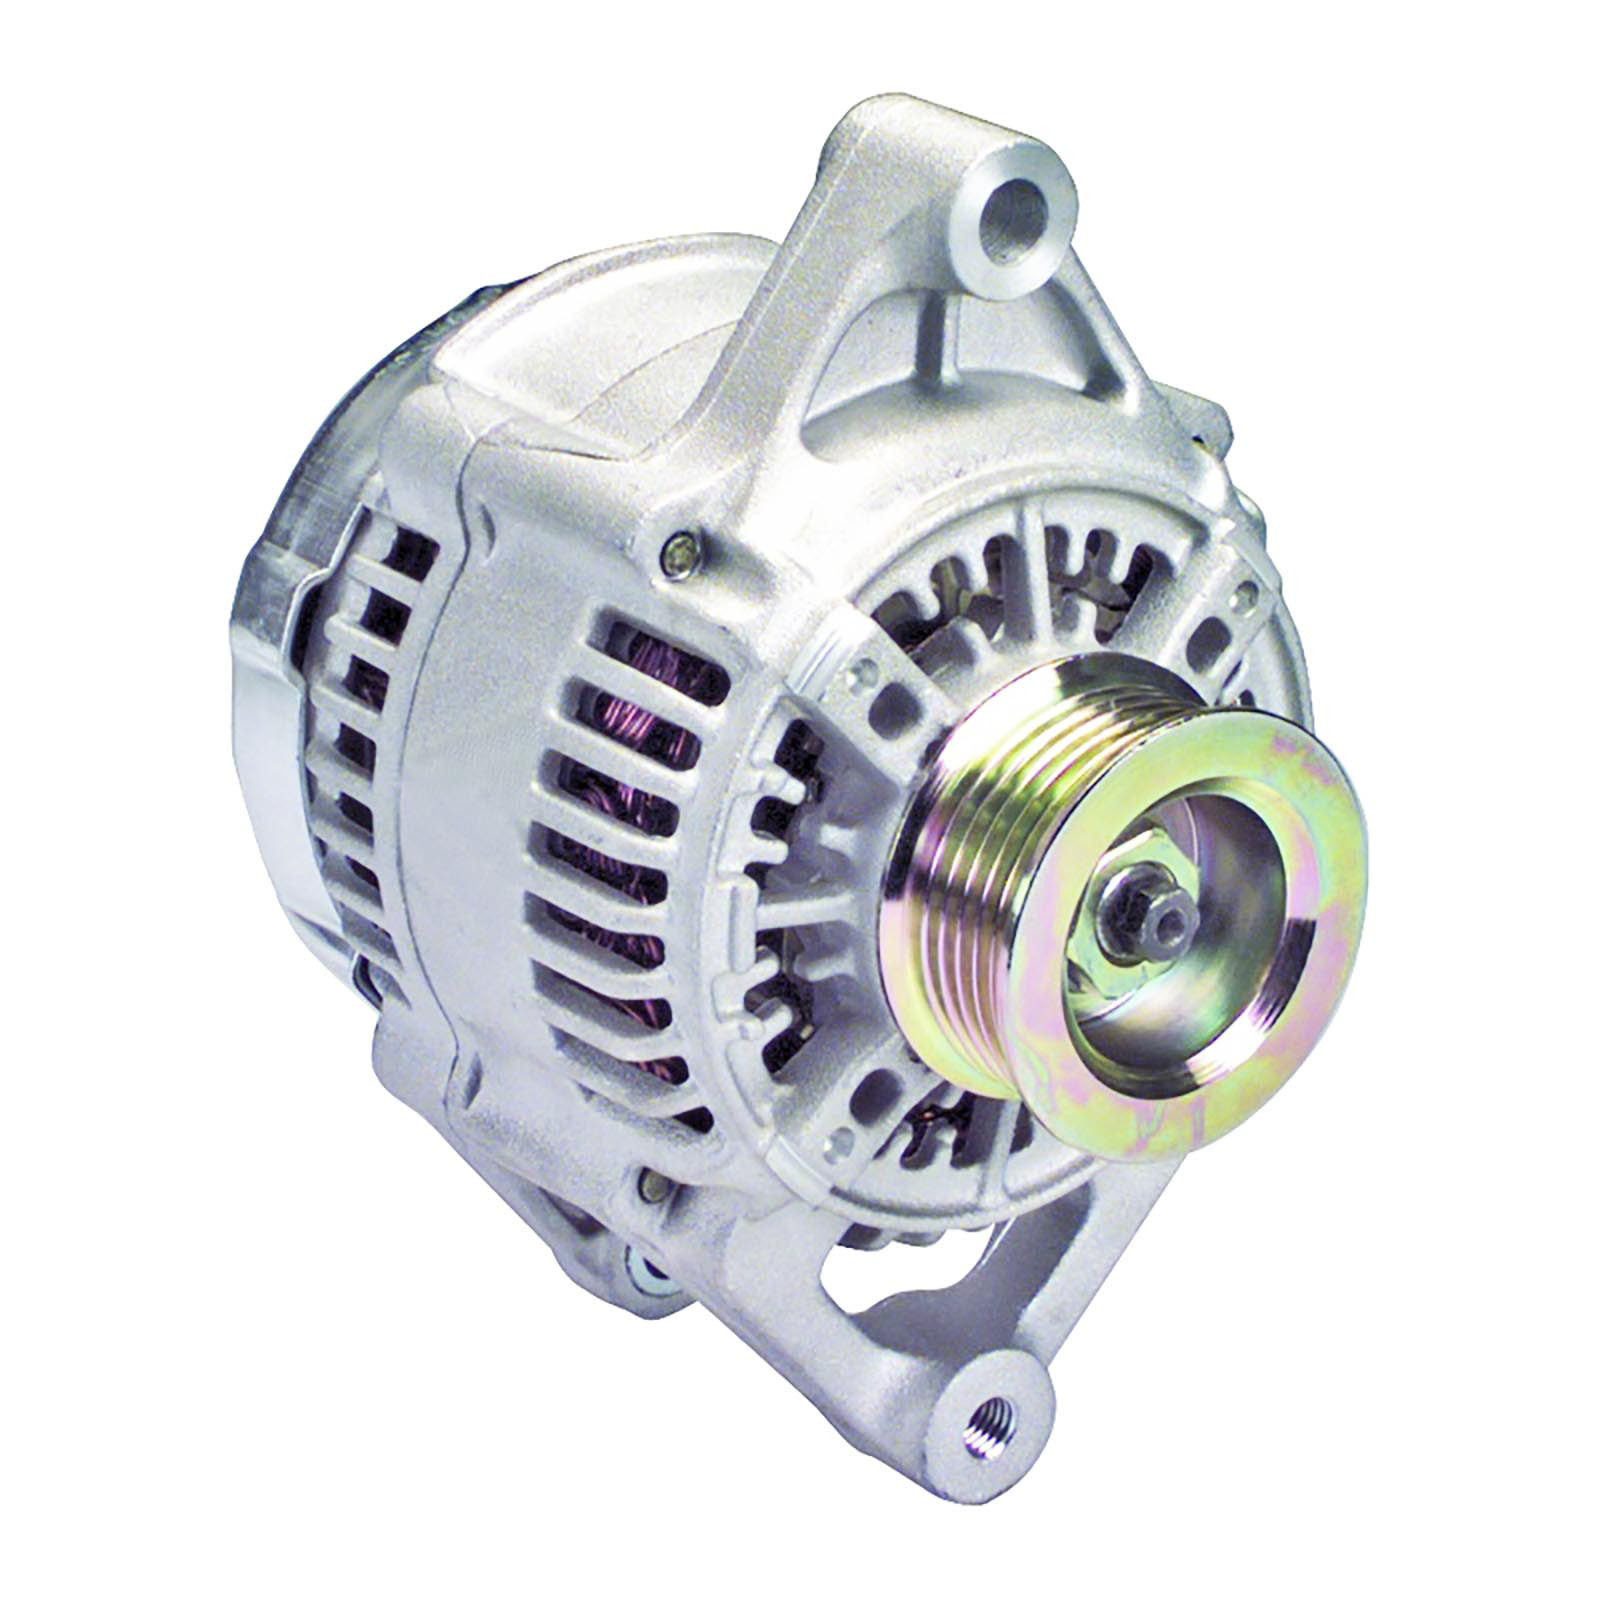 NEW ALTERNATOR CHRYSLER CIRRUS DODGE STRATUS PLYMOUTH BREEZE 2.0 2.4 2.5